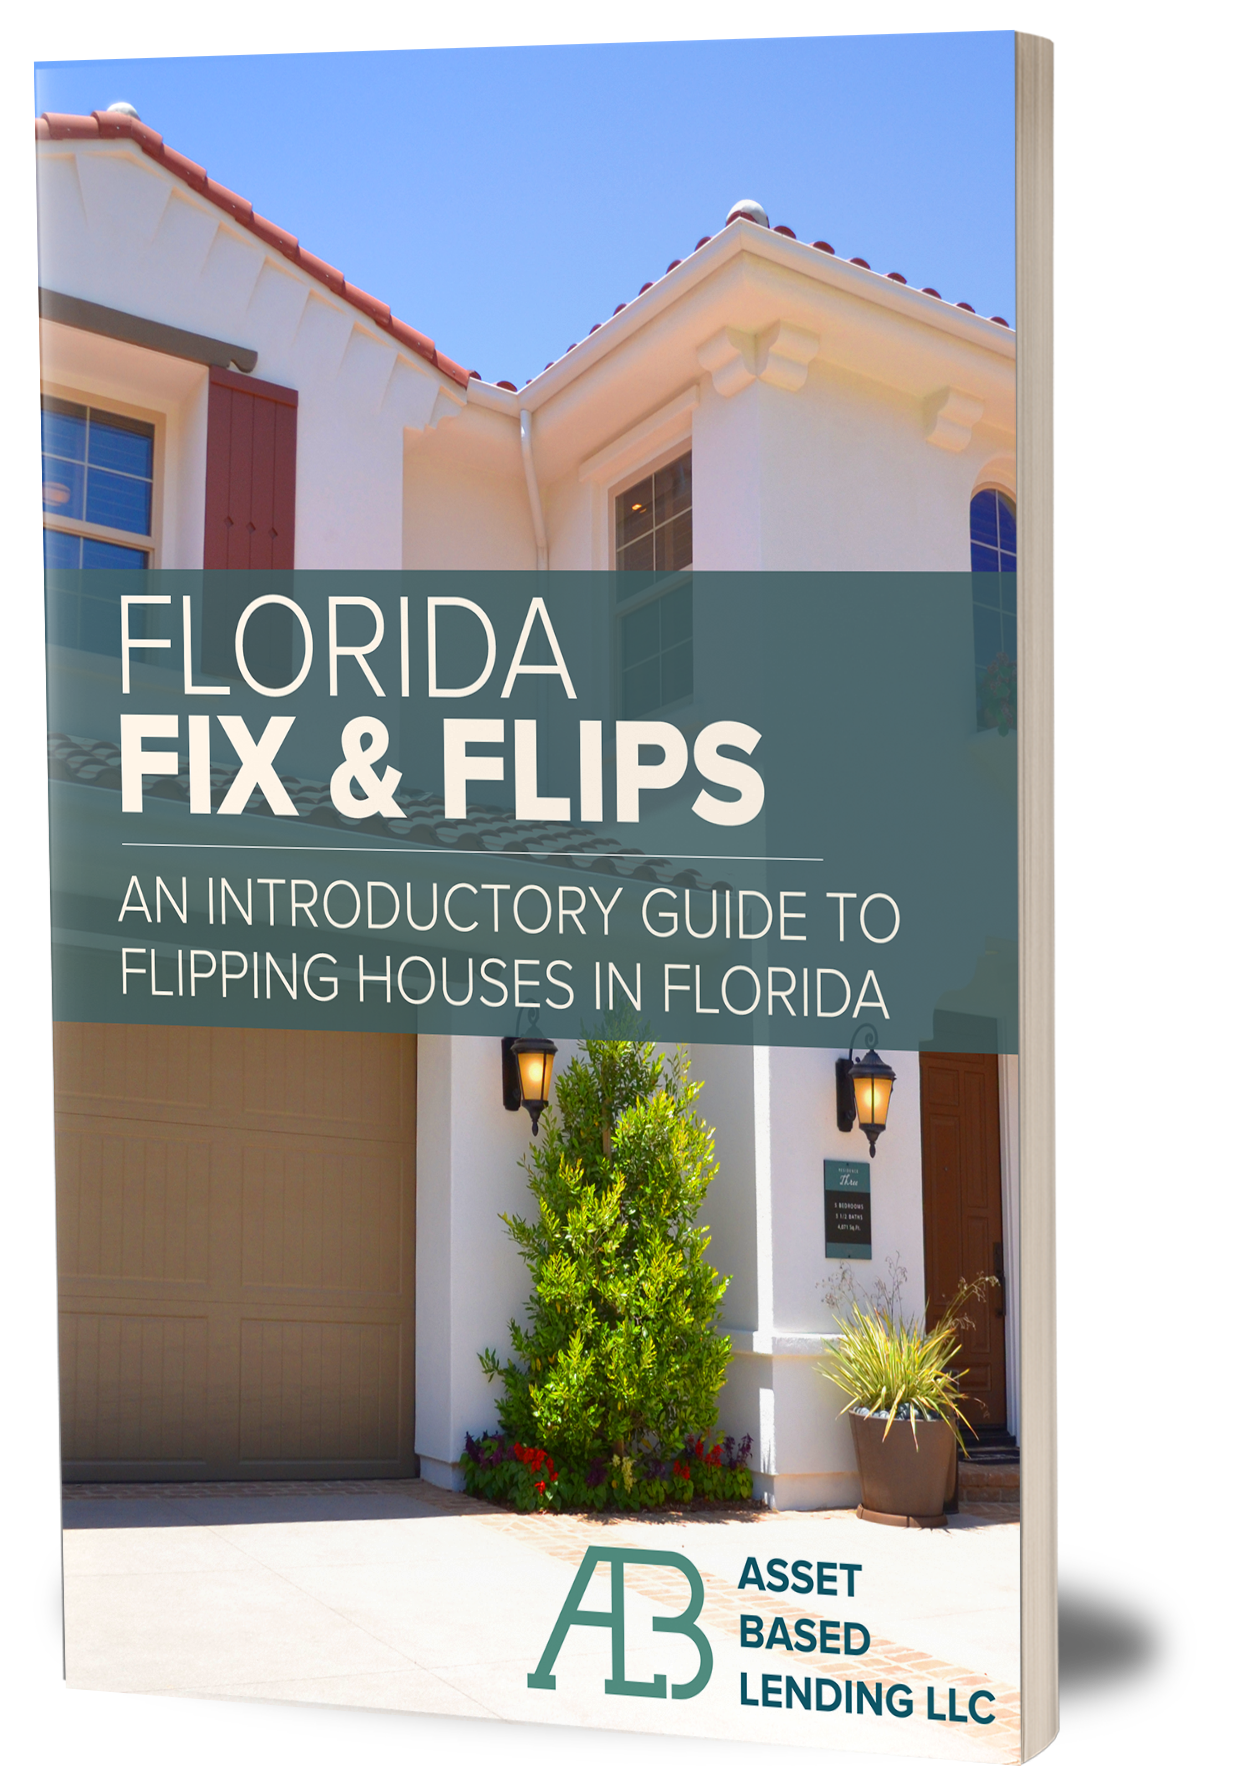 Florida fix and flip guide